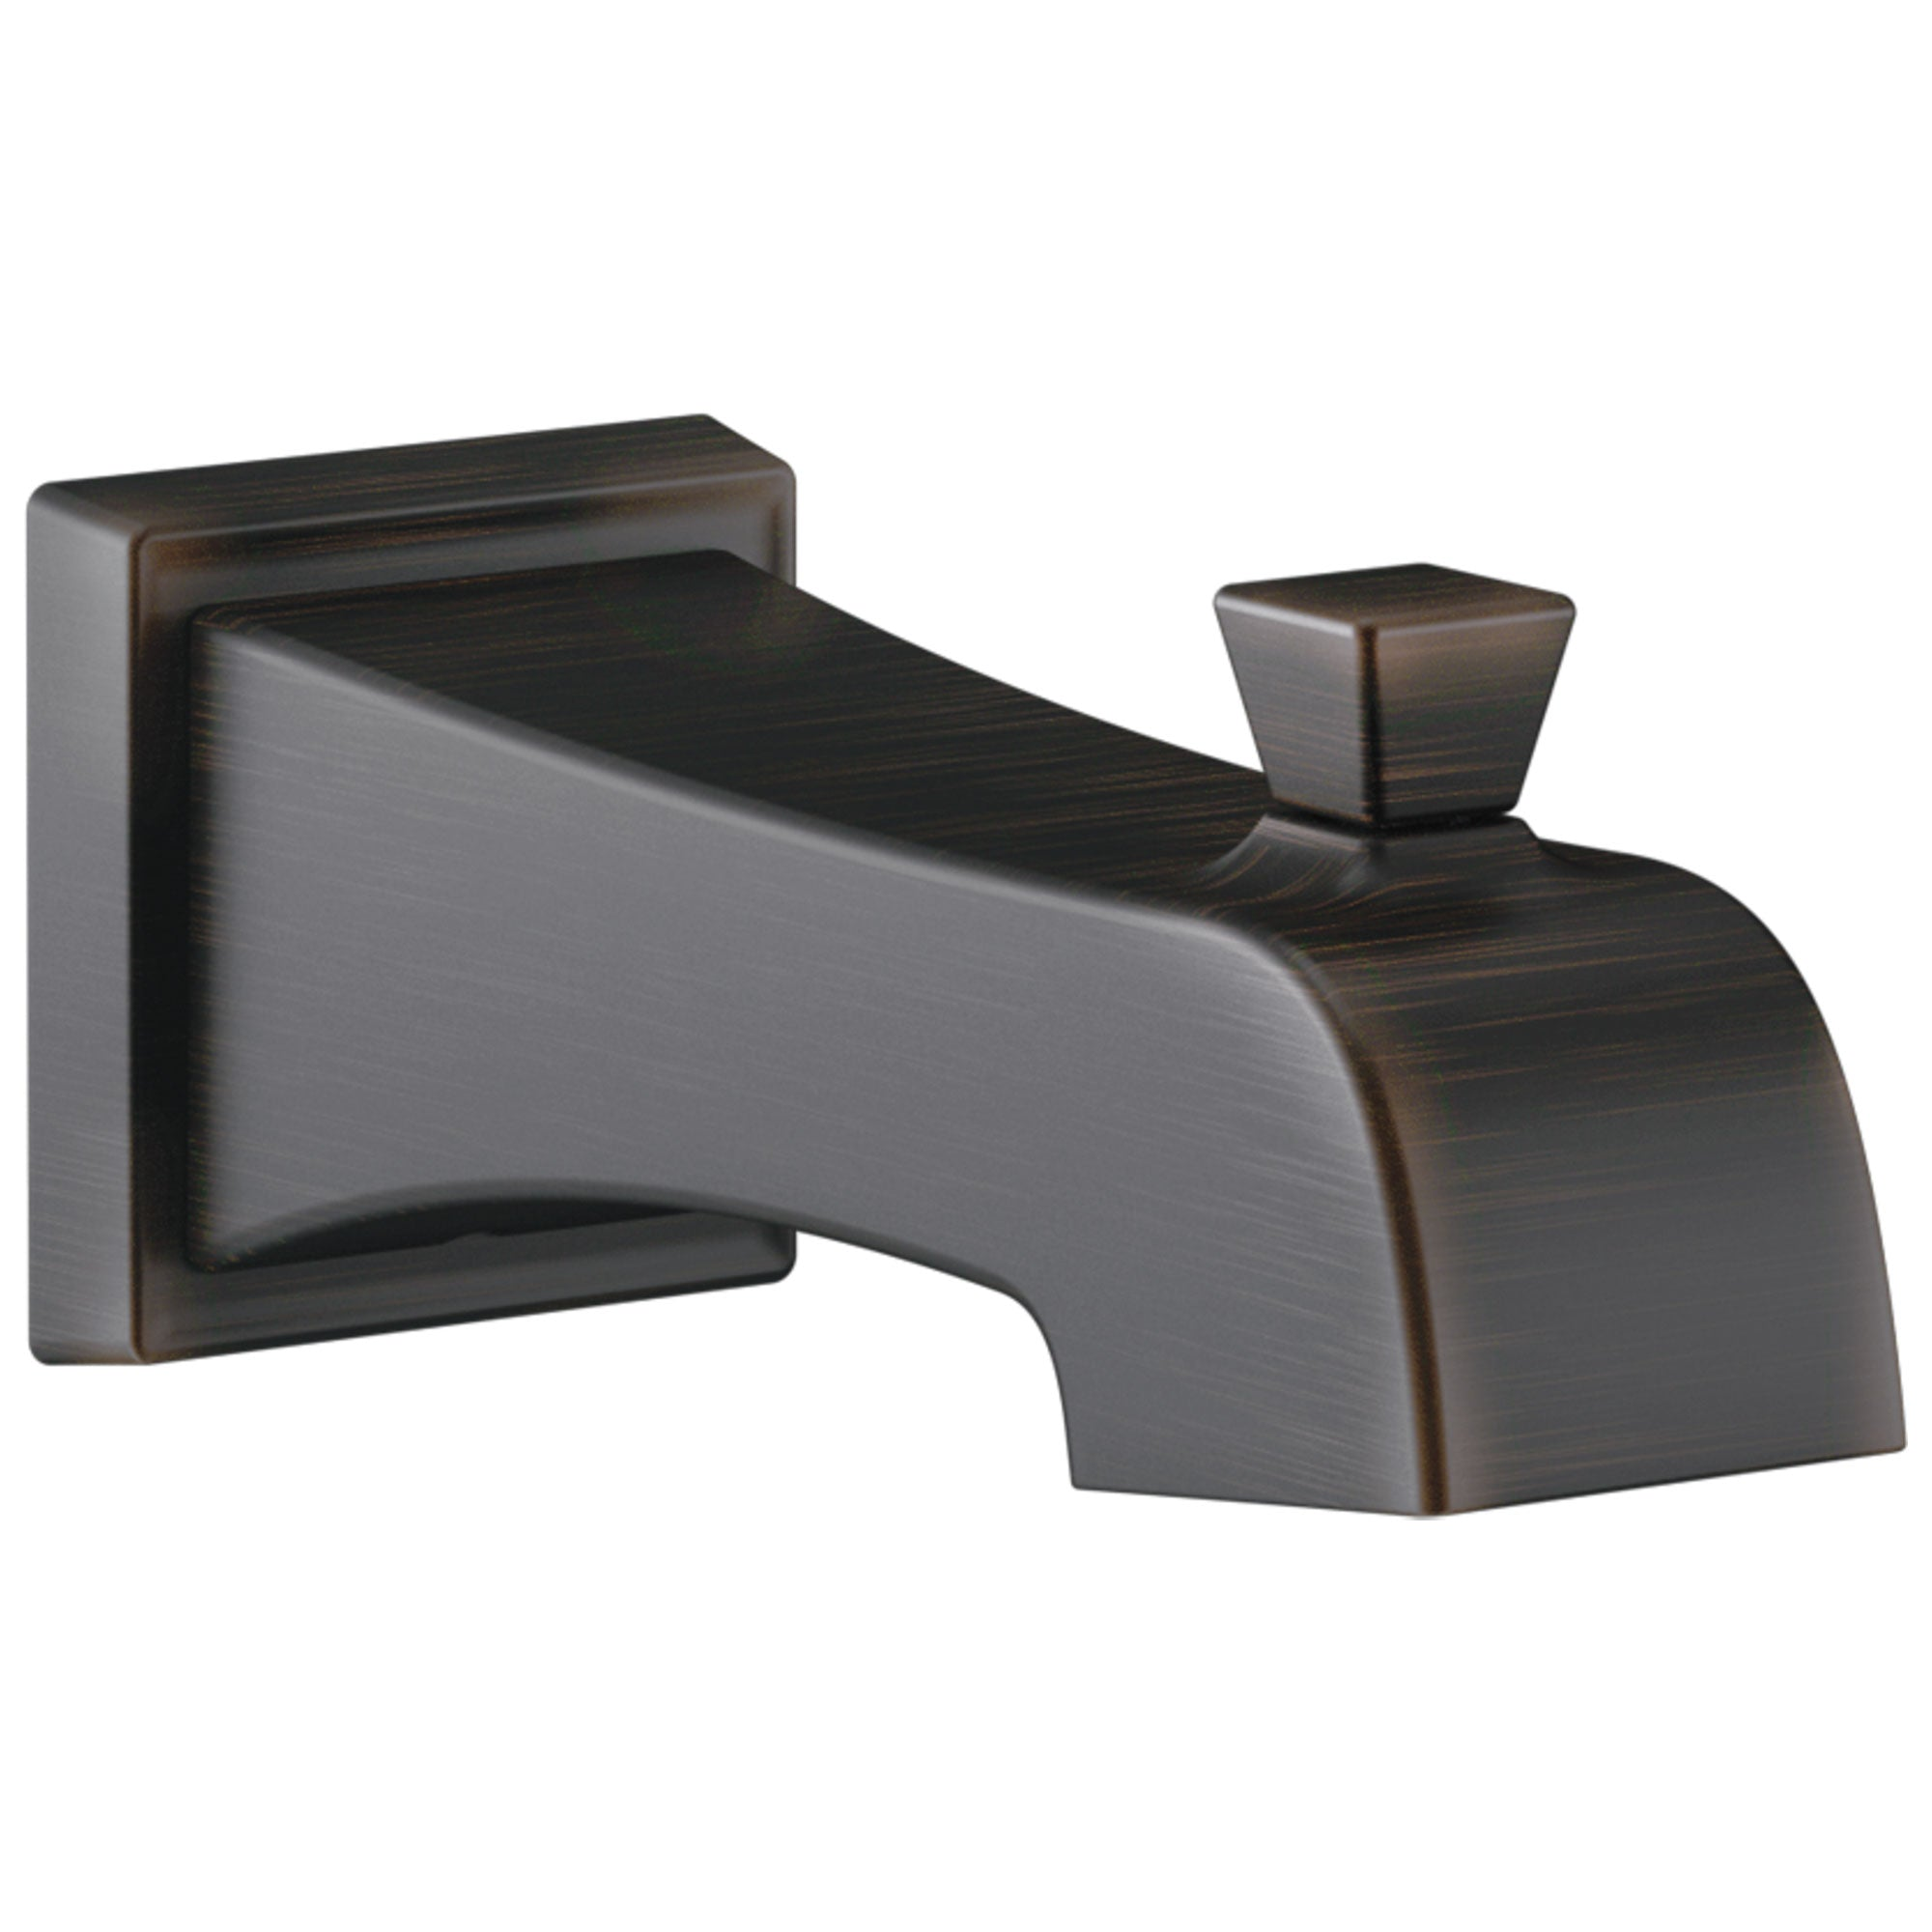 Delta Flynn Venetian Bronze Finish Tub Spout with Pull-Up Diverter DRP77091RB